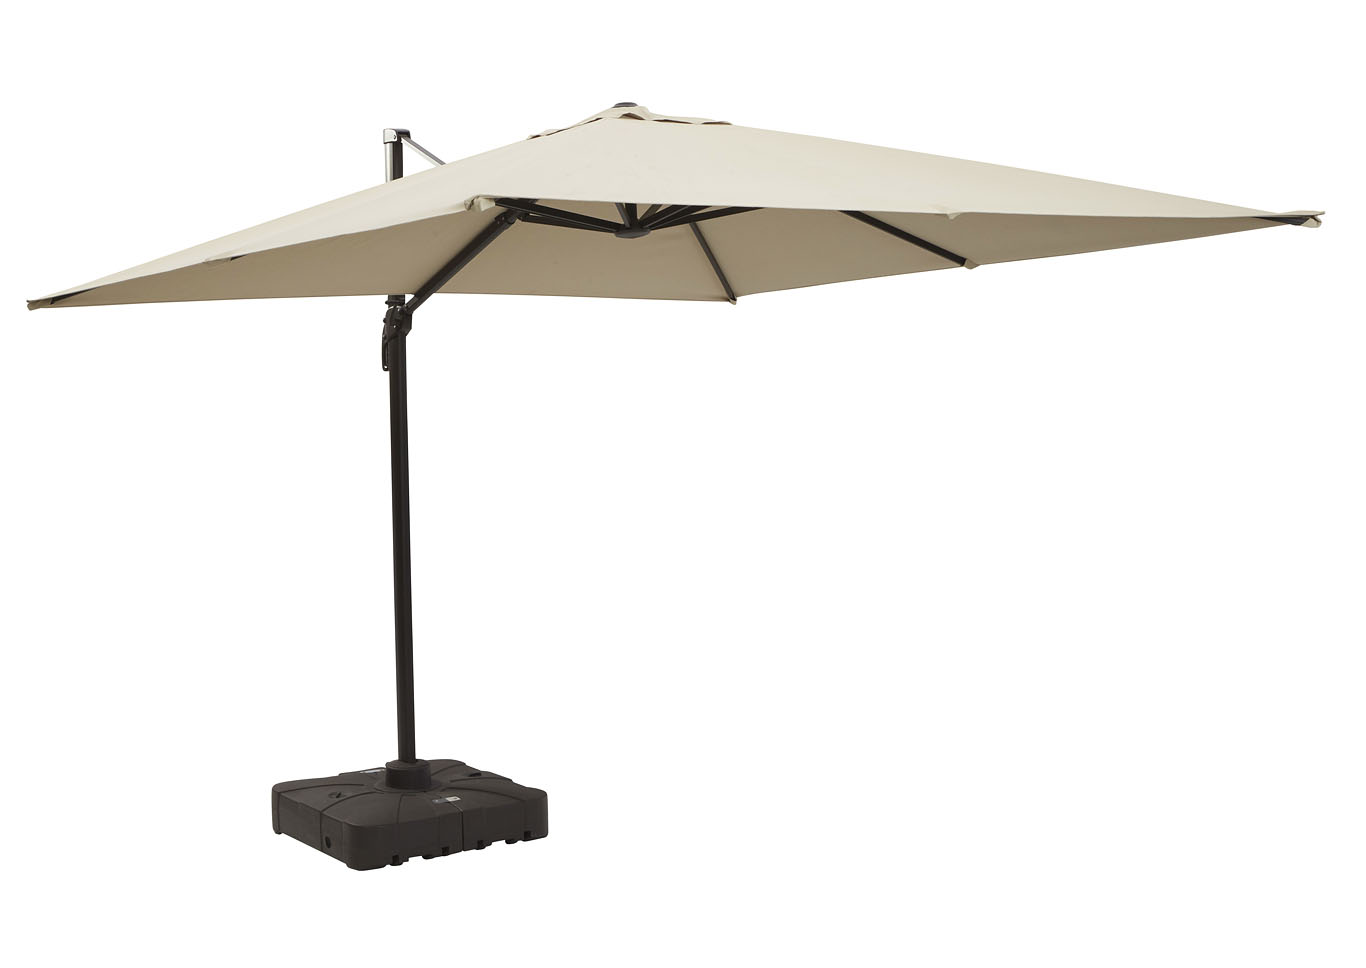 Devra Bay Beige Large Cantilever Umbrella and Base,Outdoor By Ashley